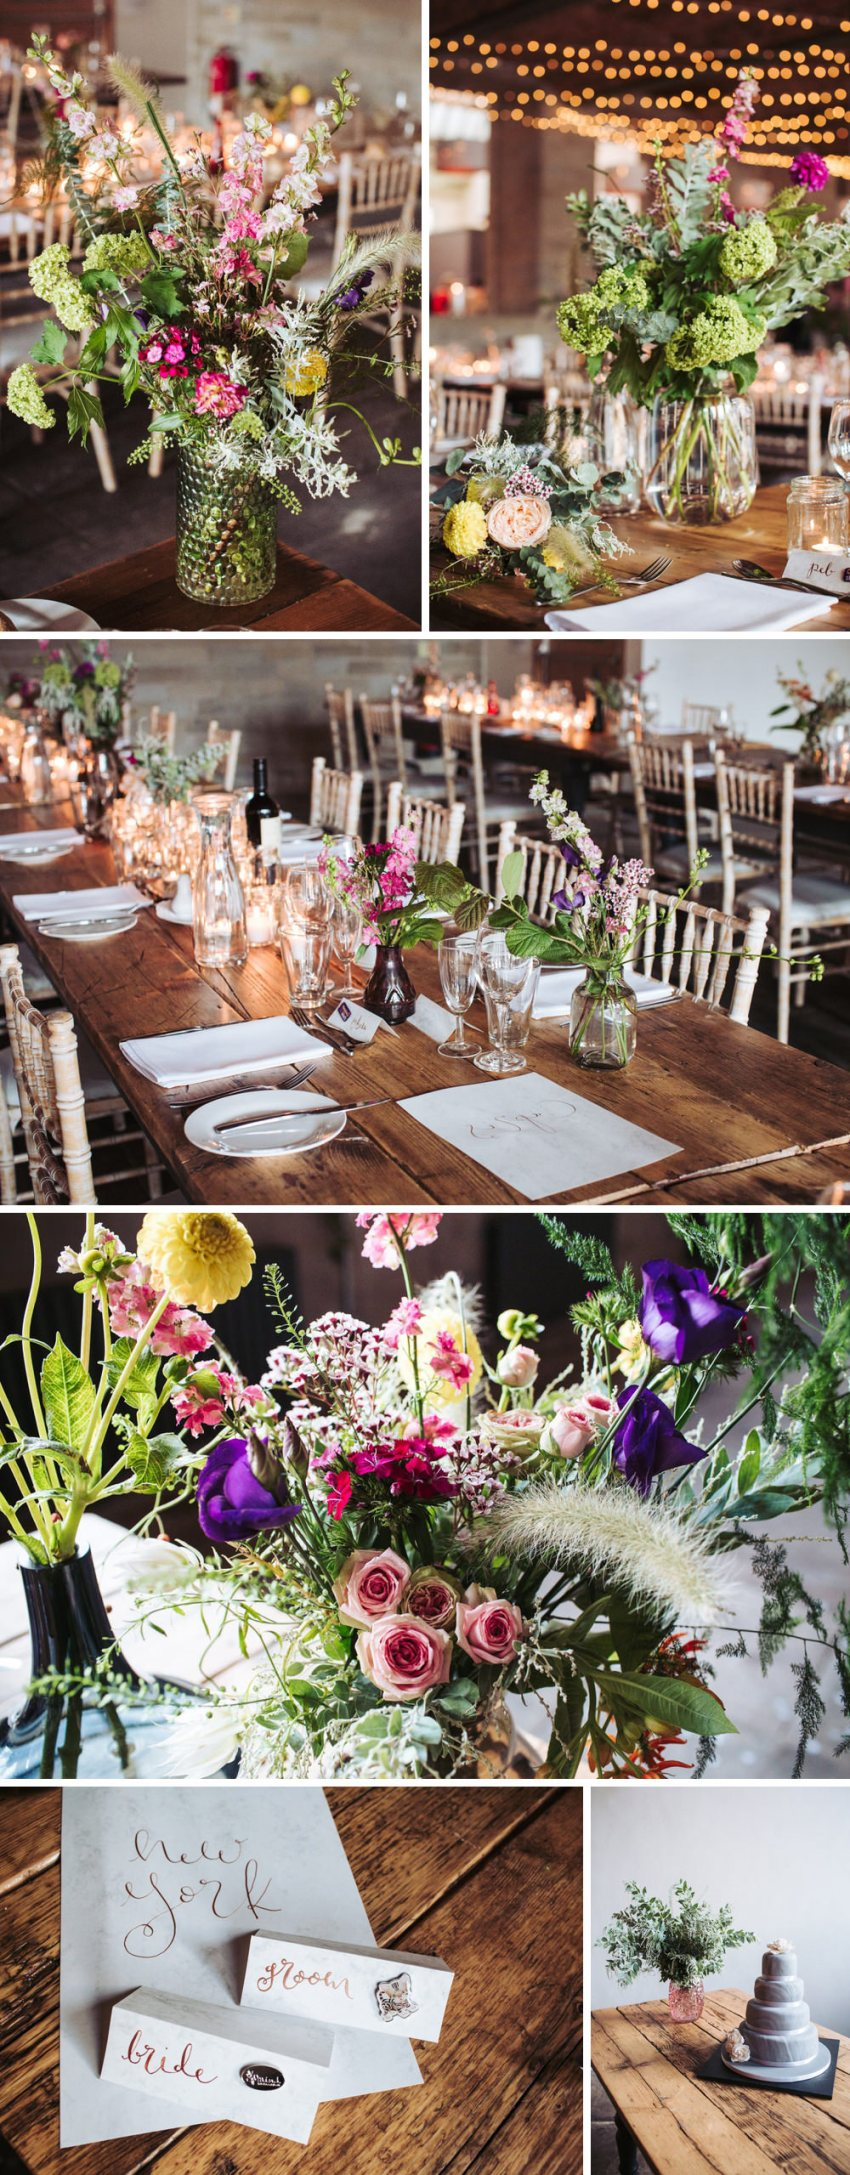 Industrial wedding venue Leeds, Yorkshire. Cool, rustic tables and flower decorations at the Arches.